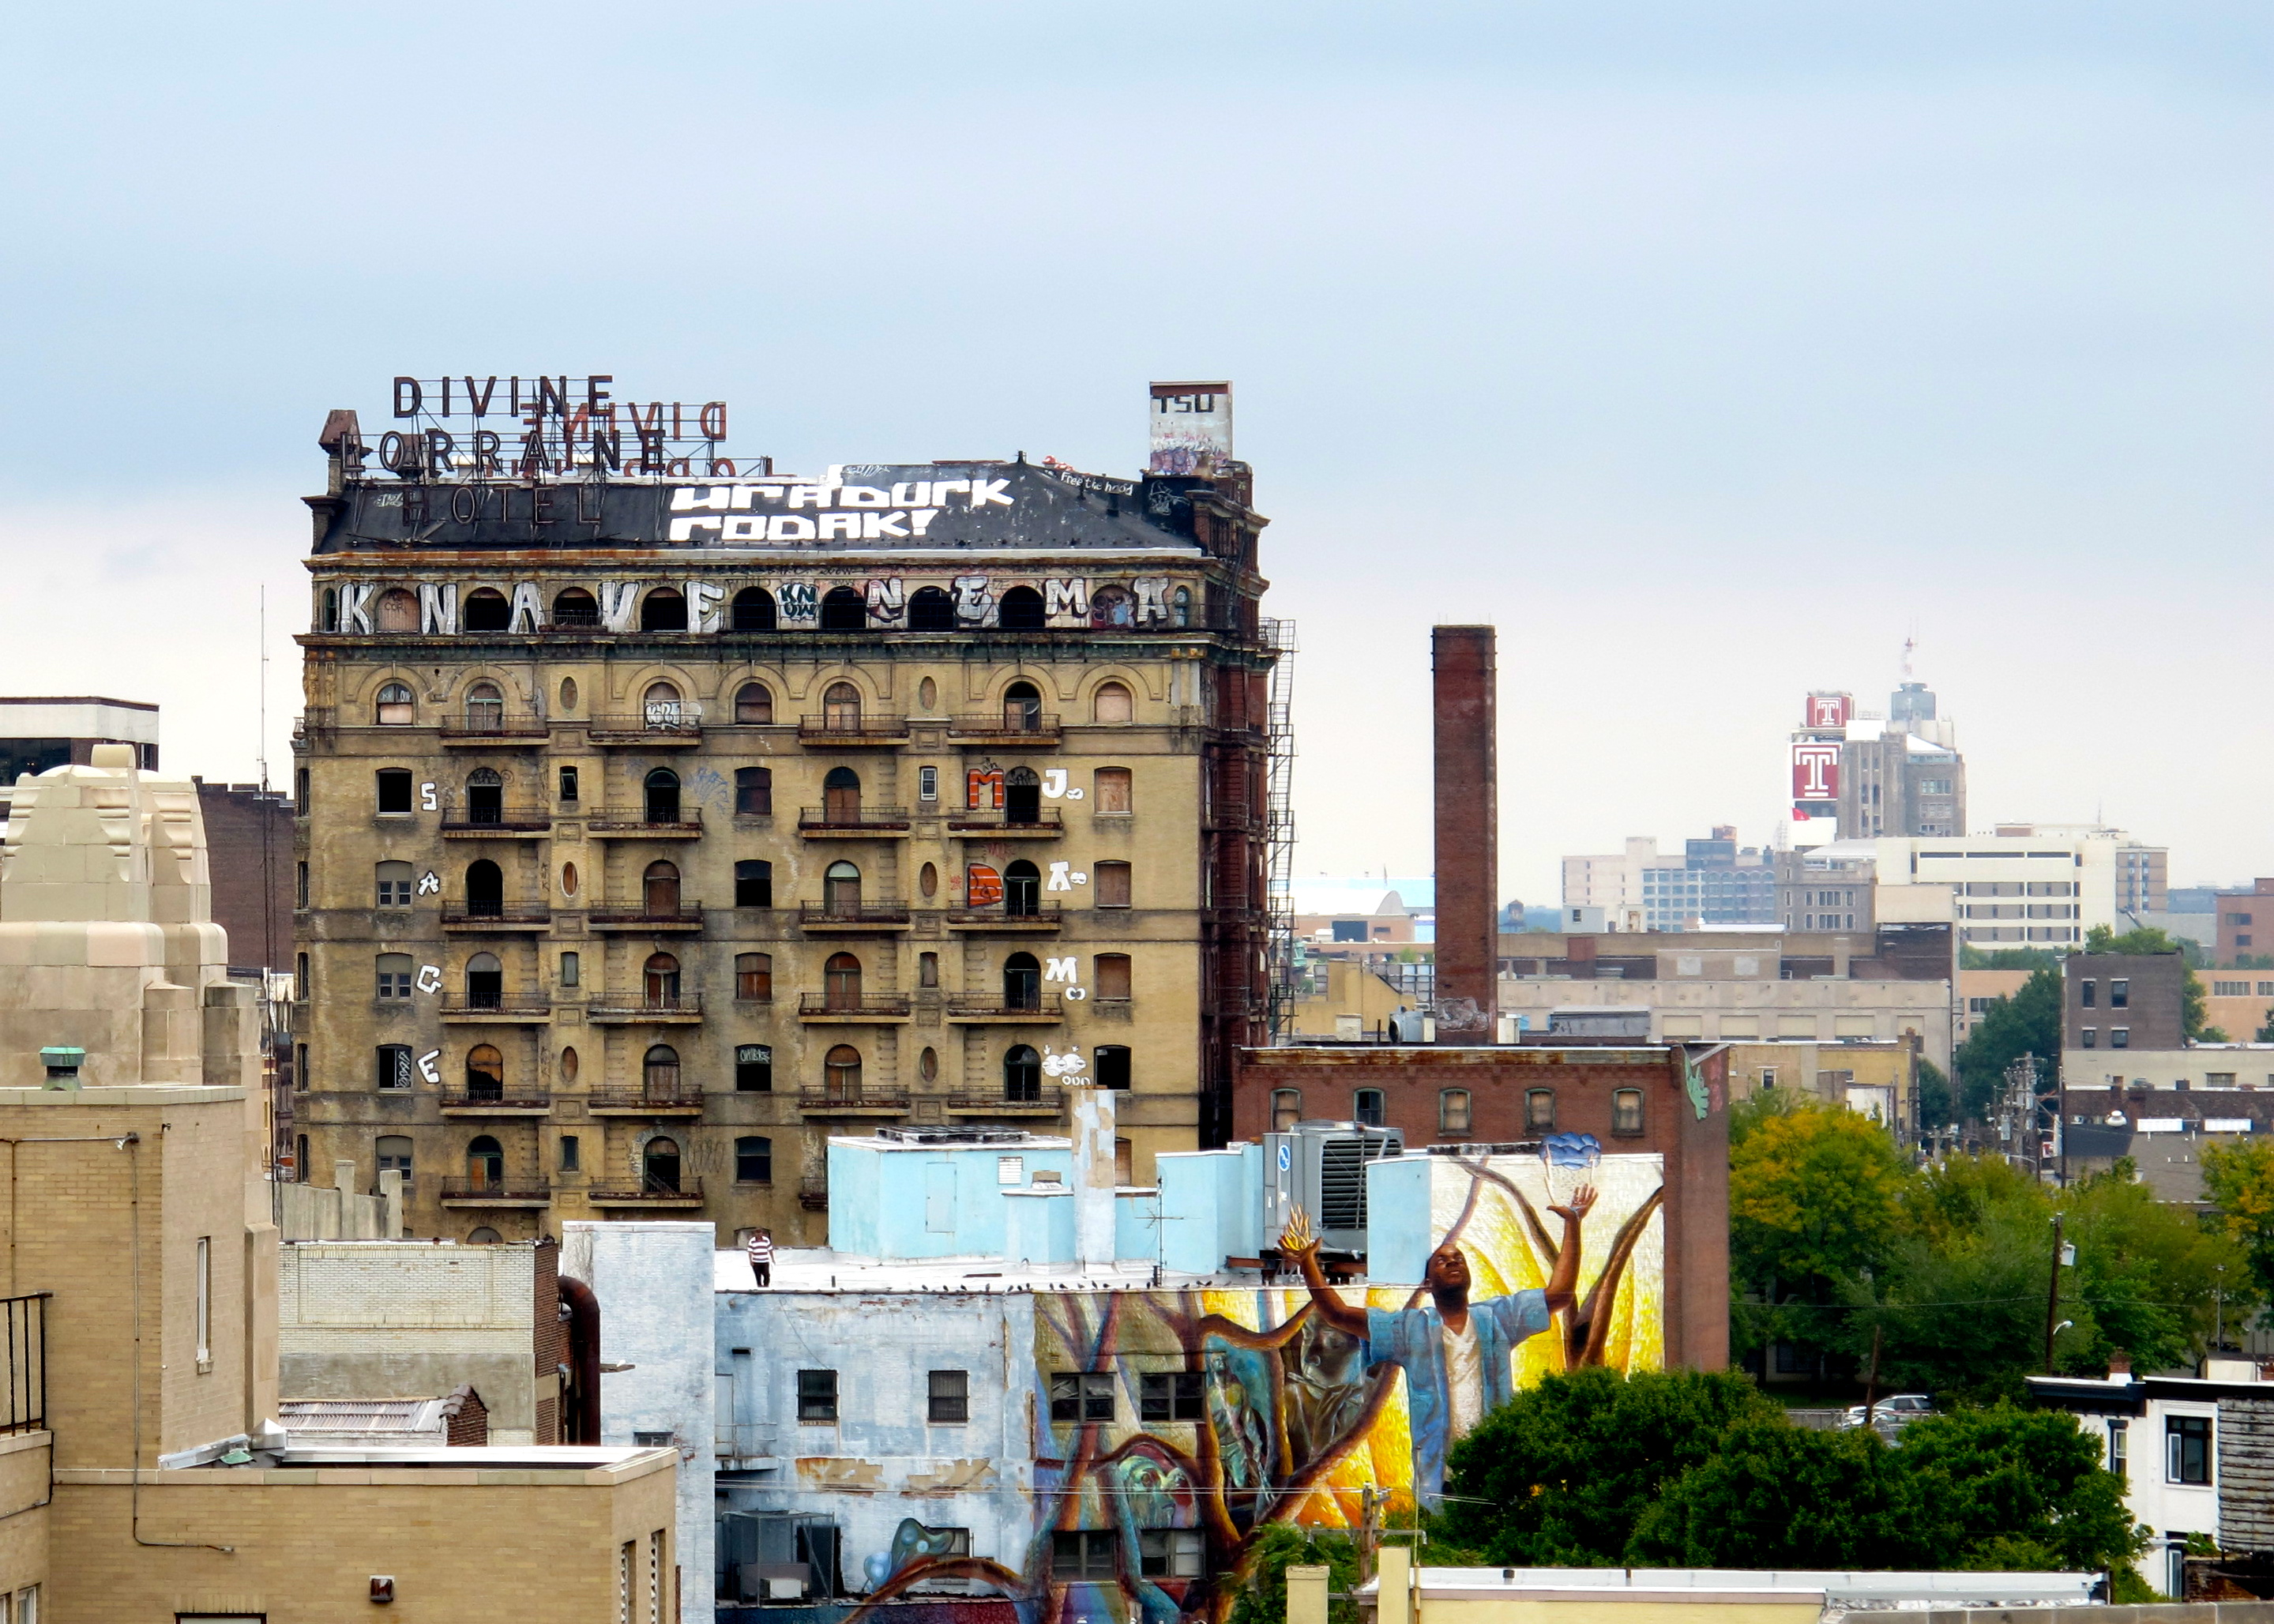 The Divine Lorraine and beyond.